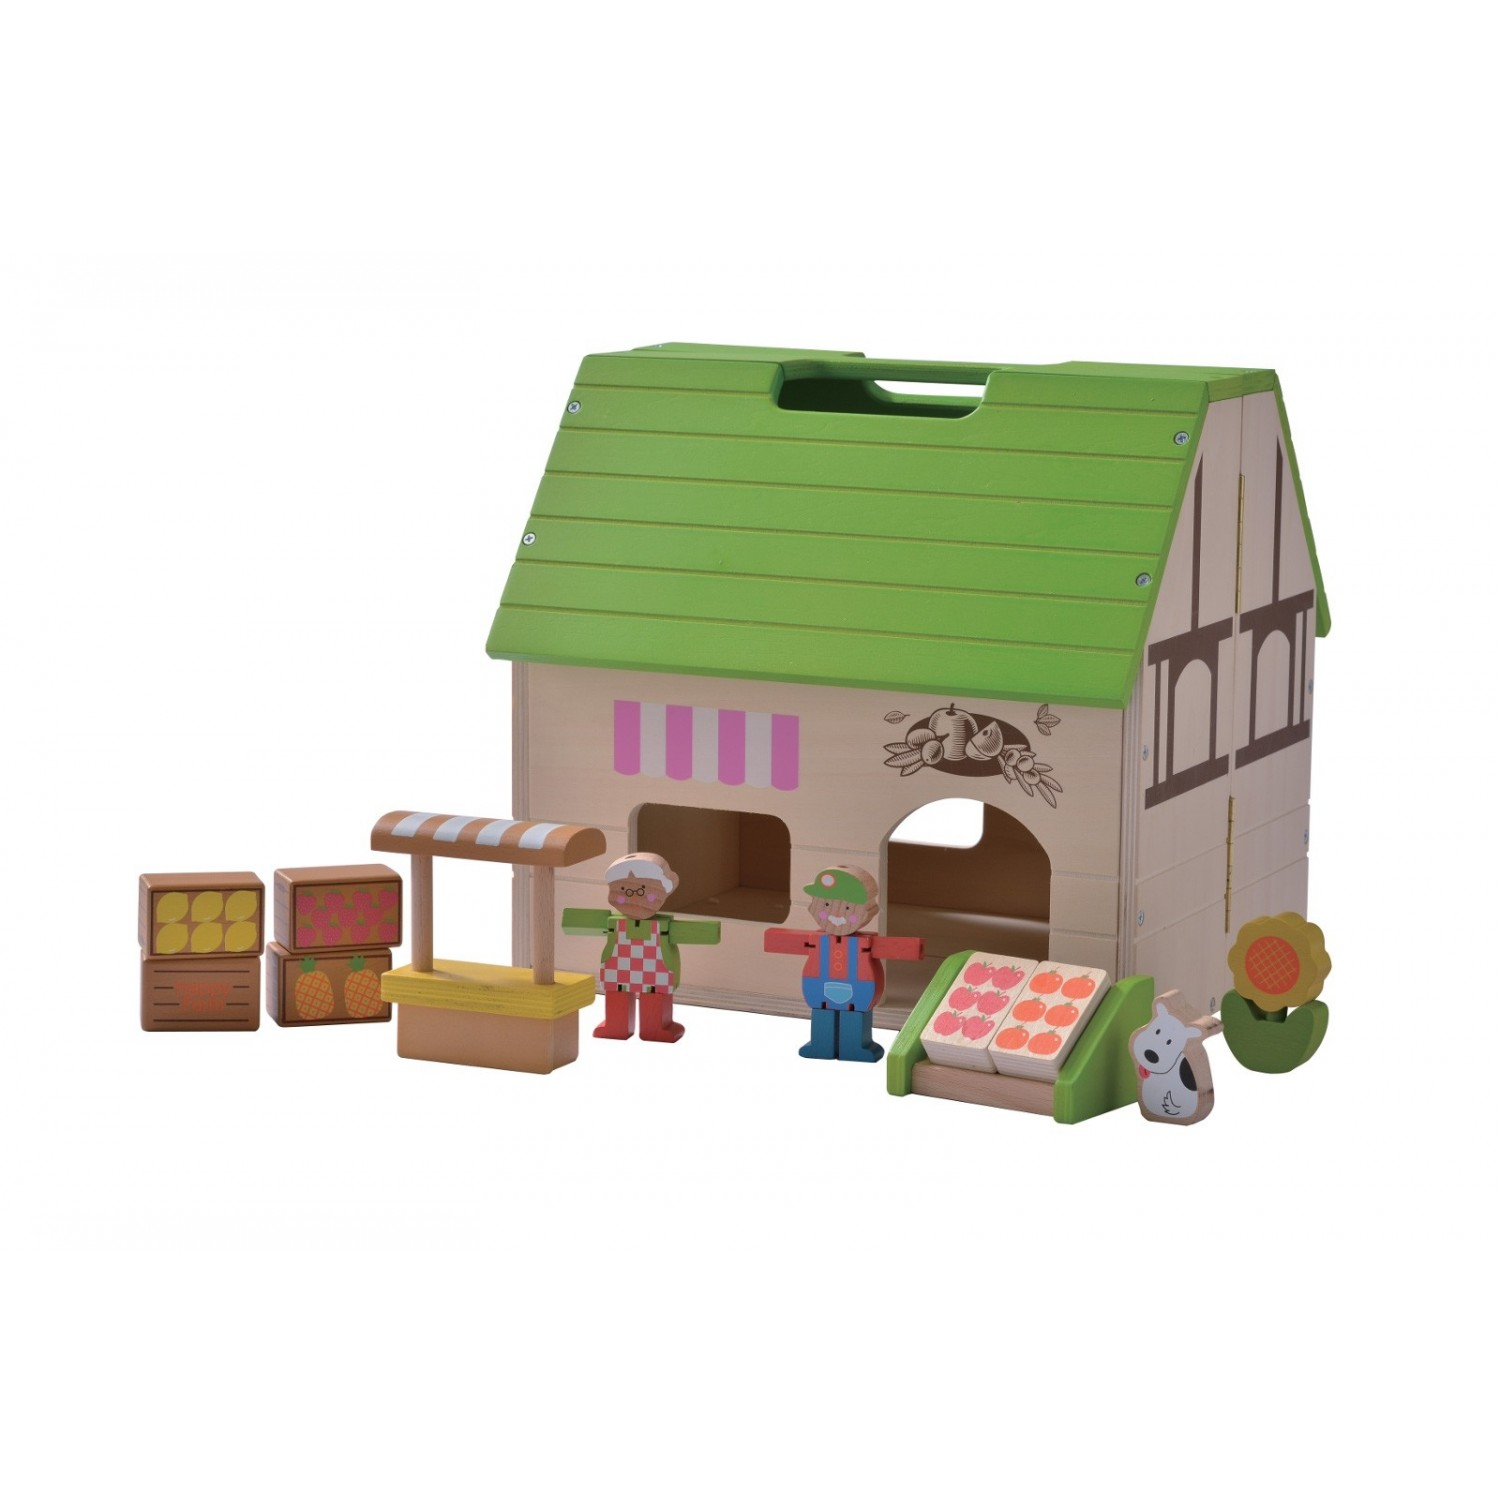 Organic Shop Doll's House eco wooden toy | EverEarth